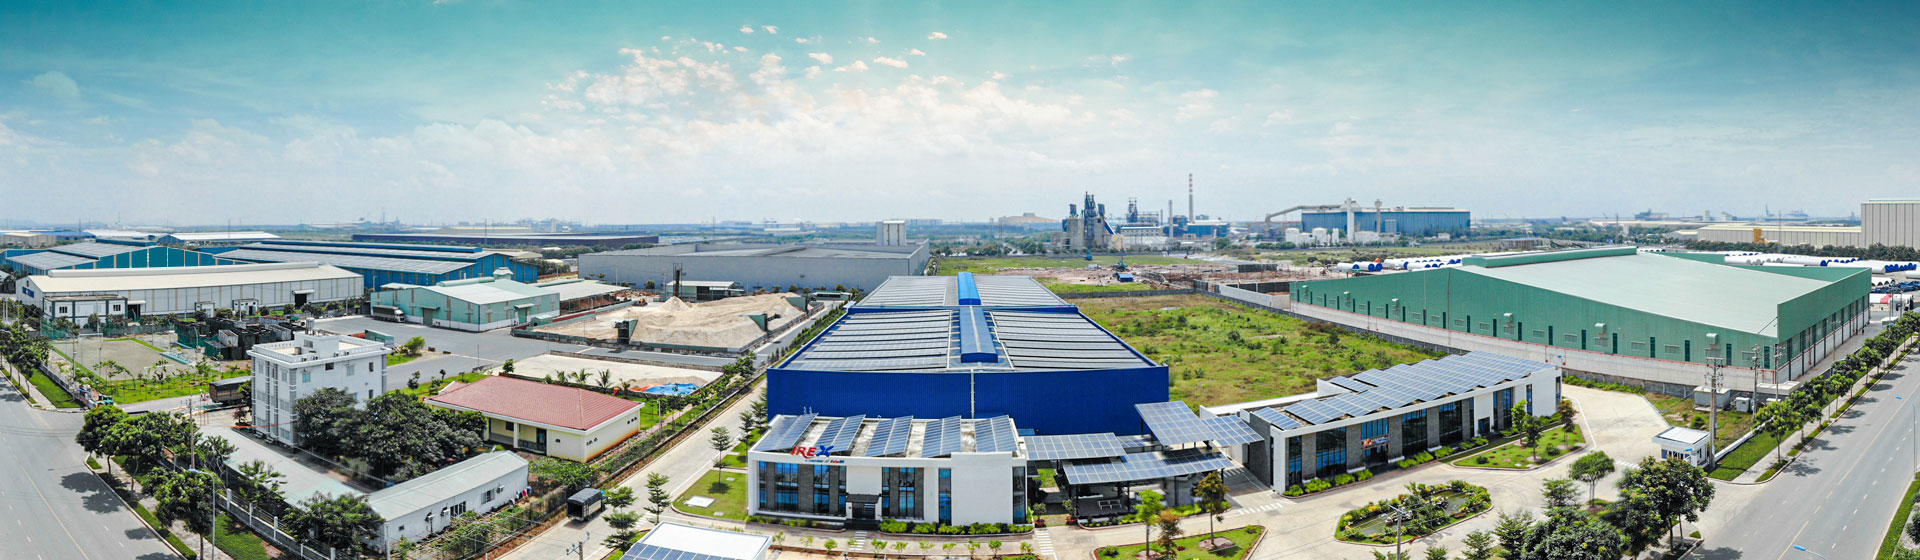 Vietnamese factory produces photovoltaic panels meeting European and American standards.